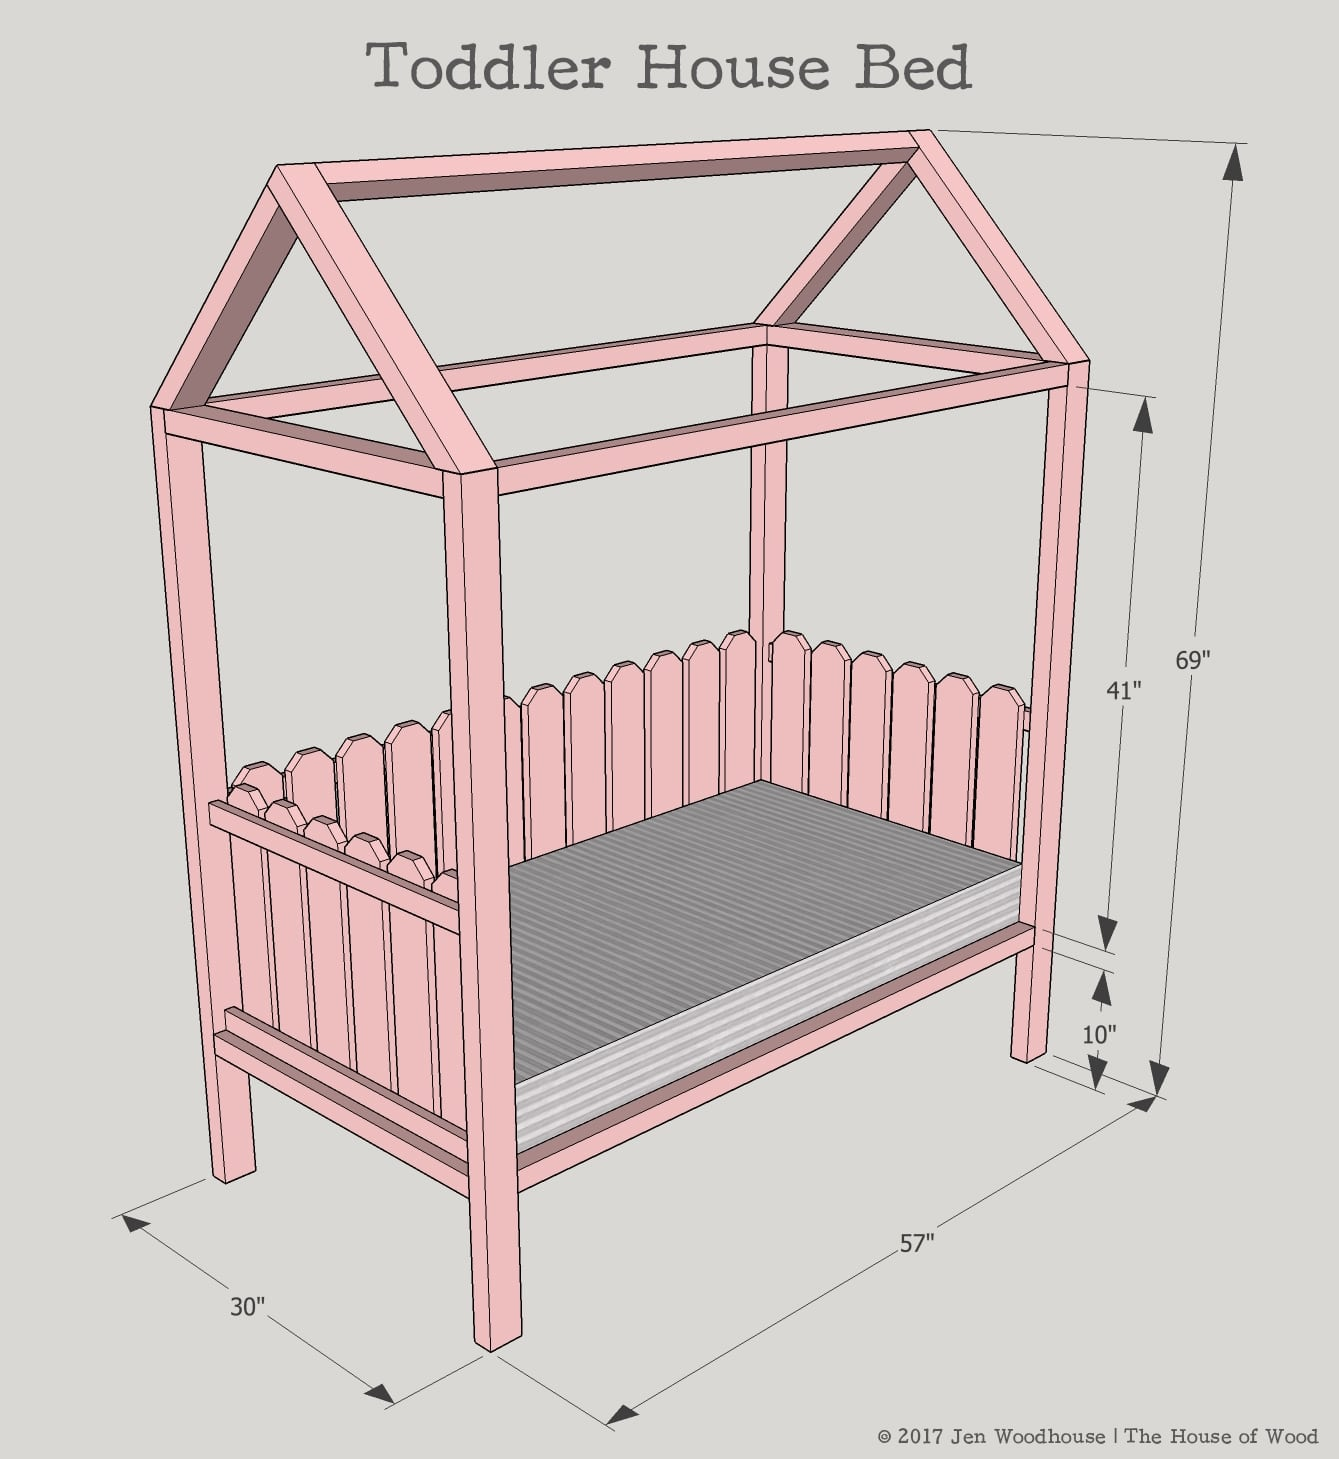 Diy toddler house bed for Diy house plans